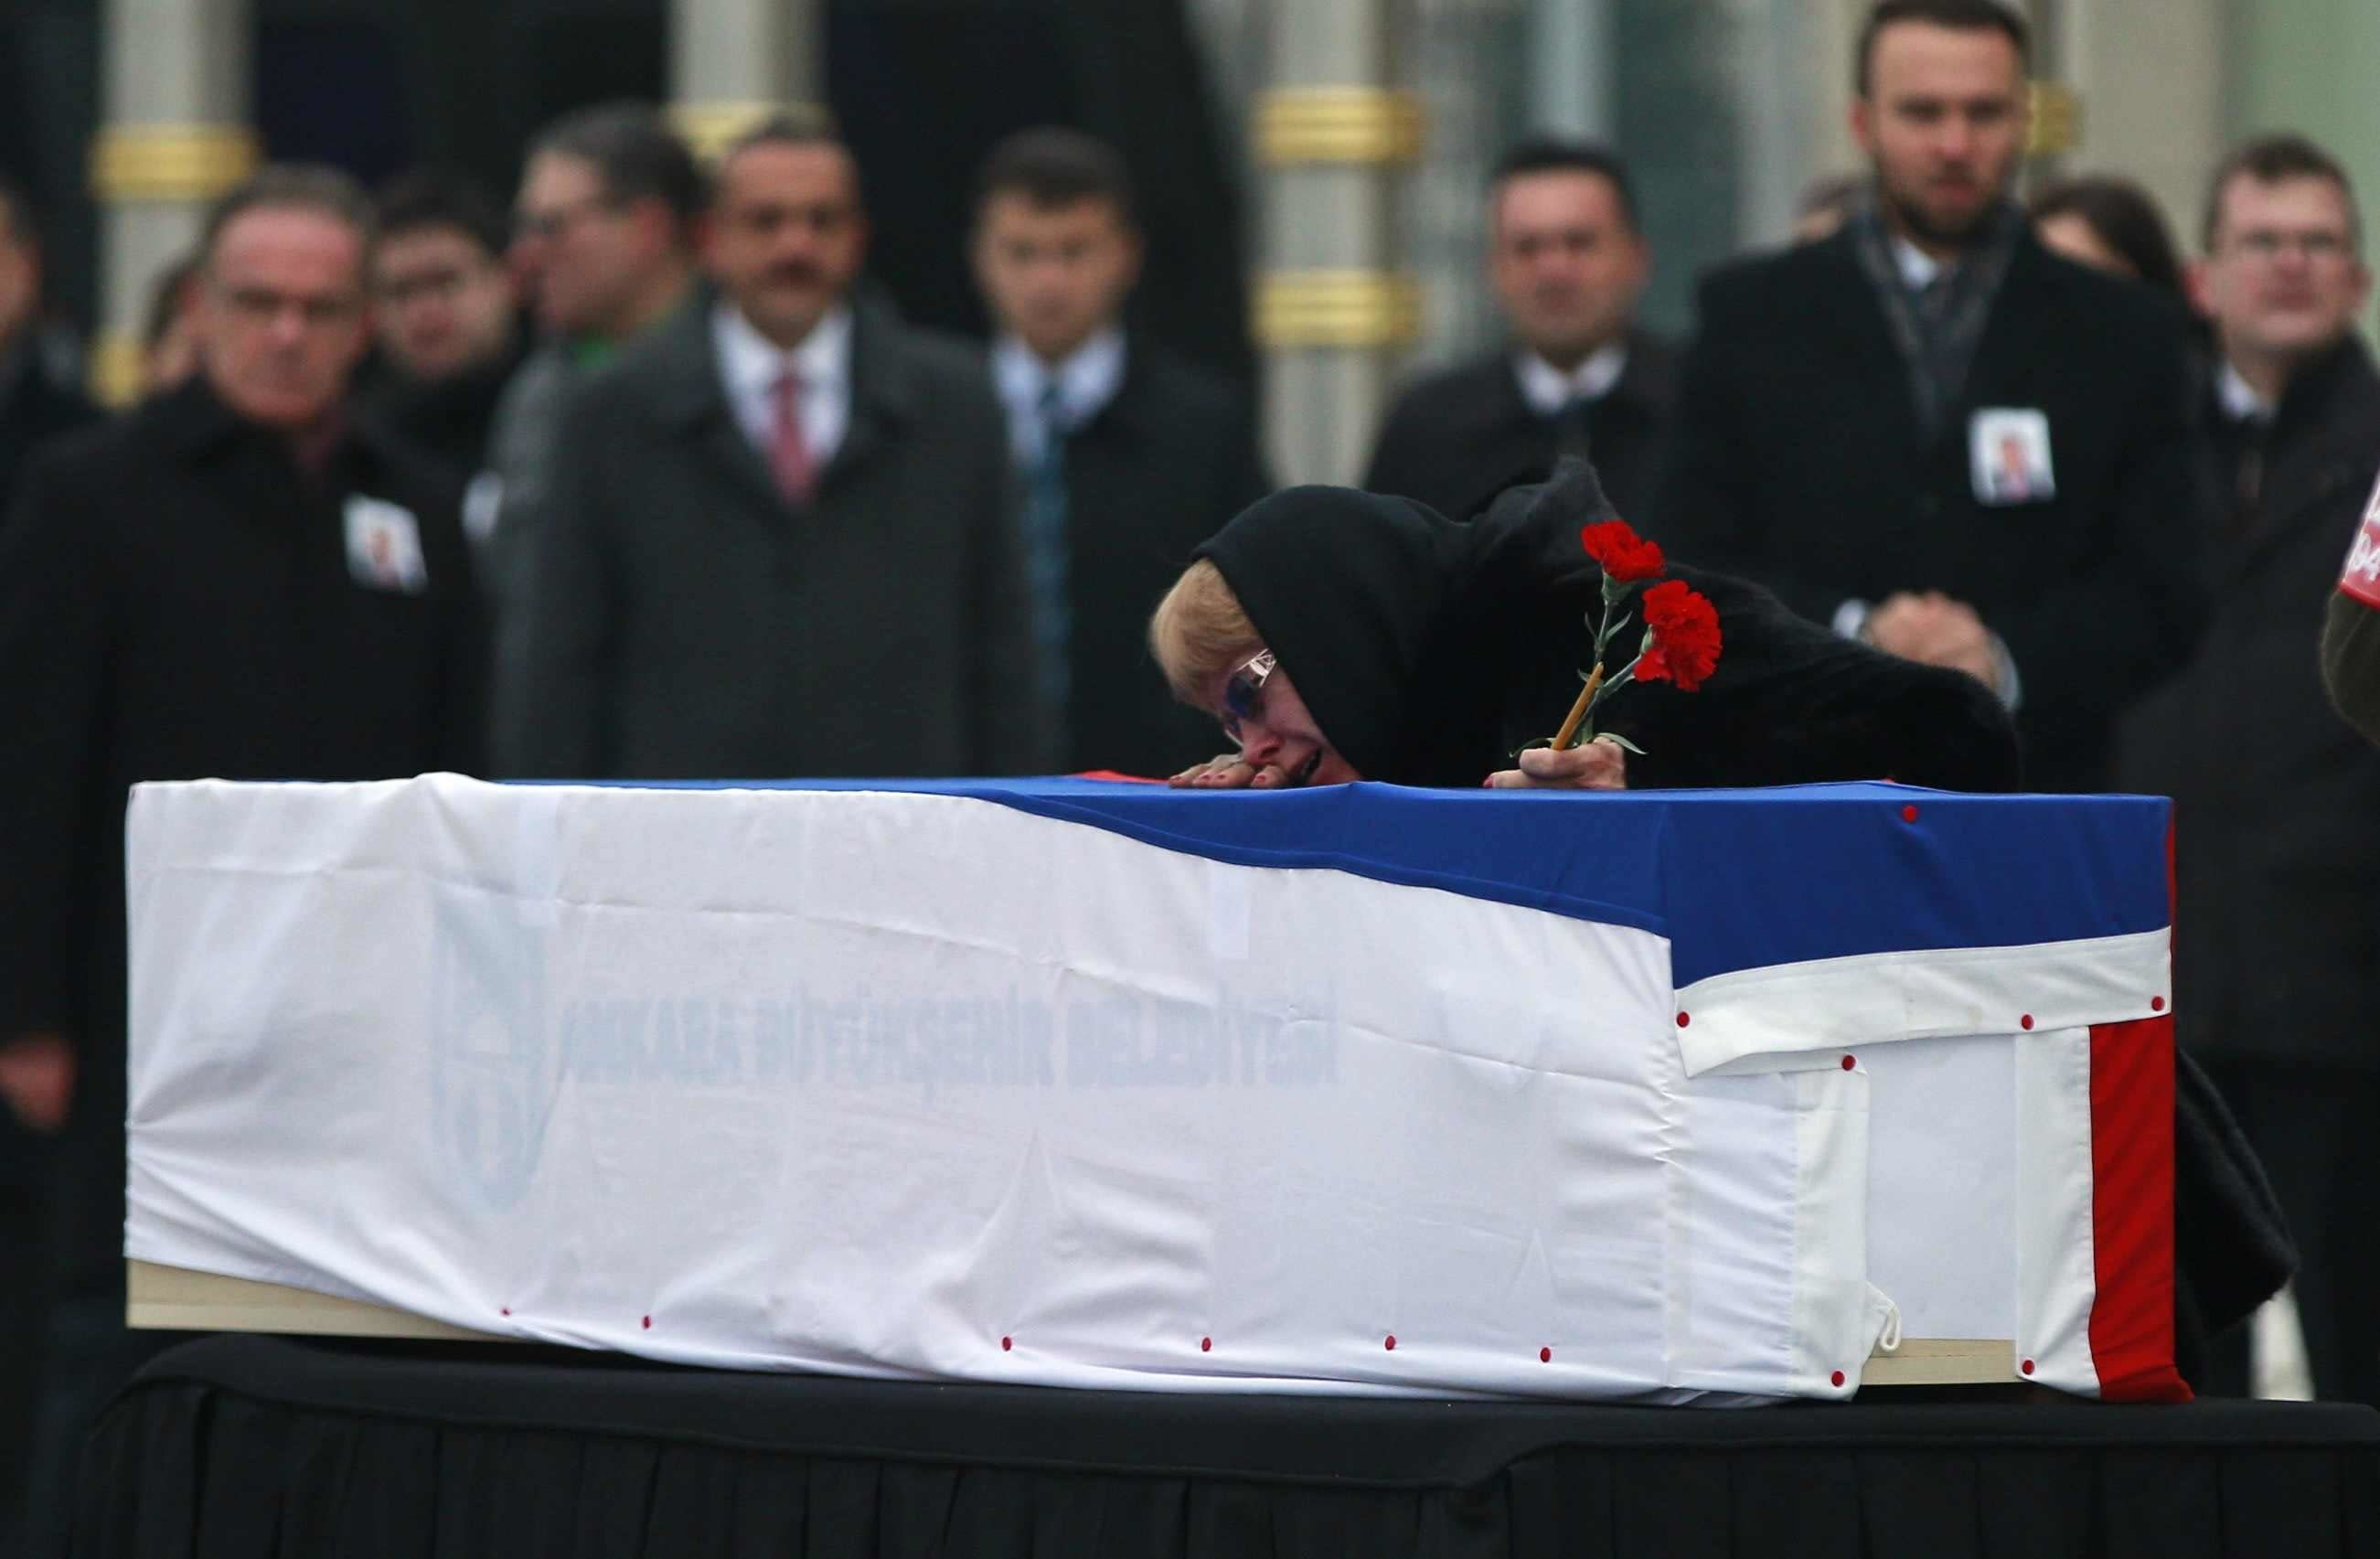 <p>The wife of Russian Ambassador to Turkey Andrey Karlov who was assassinated Monday, cries over her husband's coffin, draped in the Russian flag, during a ceremony at the airport in Ankara, Turkey, Tuesday, Dec, 20, 2016. (Photo: Emrah Gurel/AP) </p>